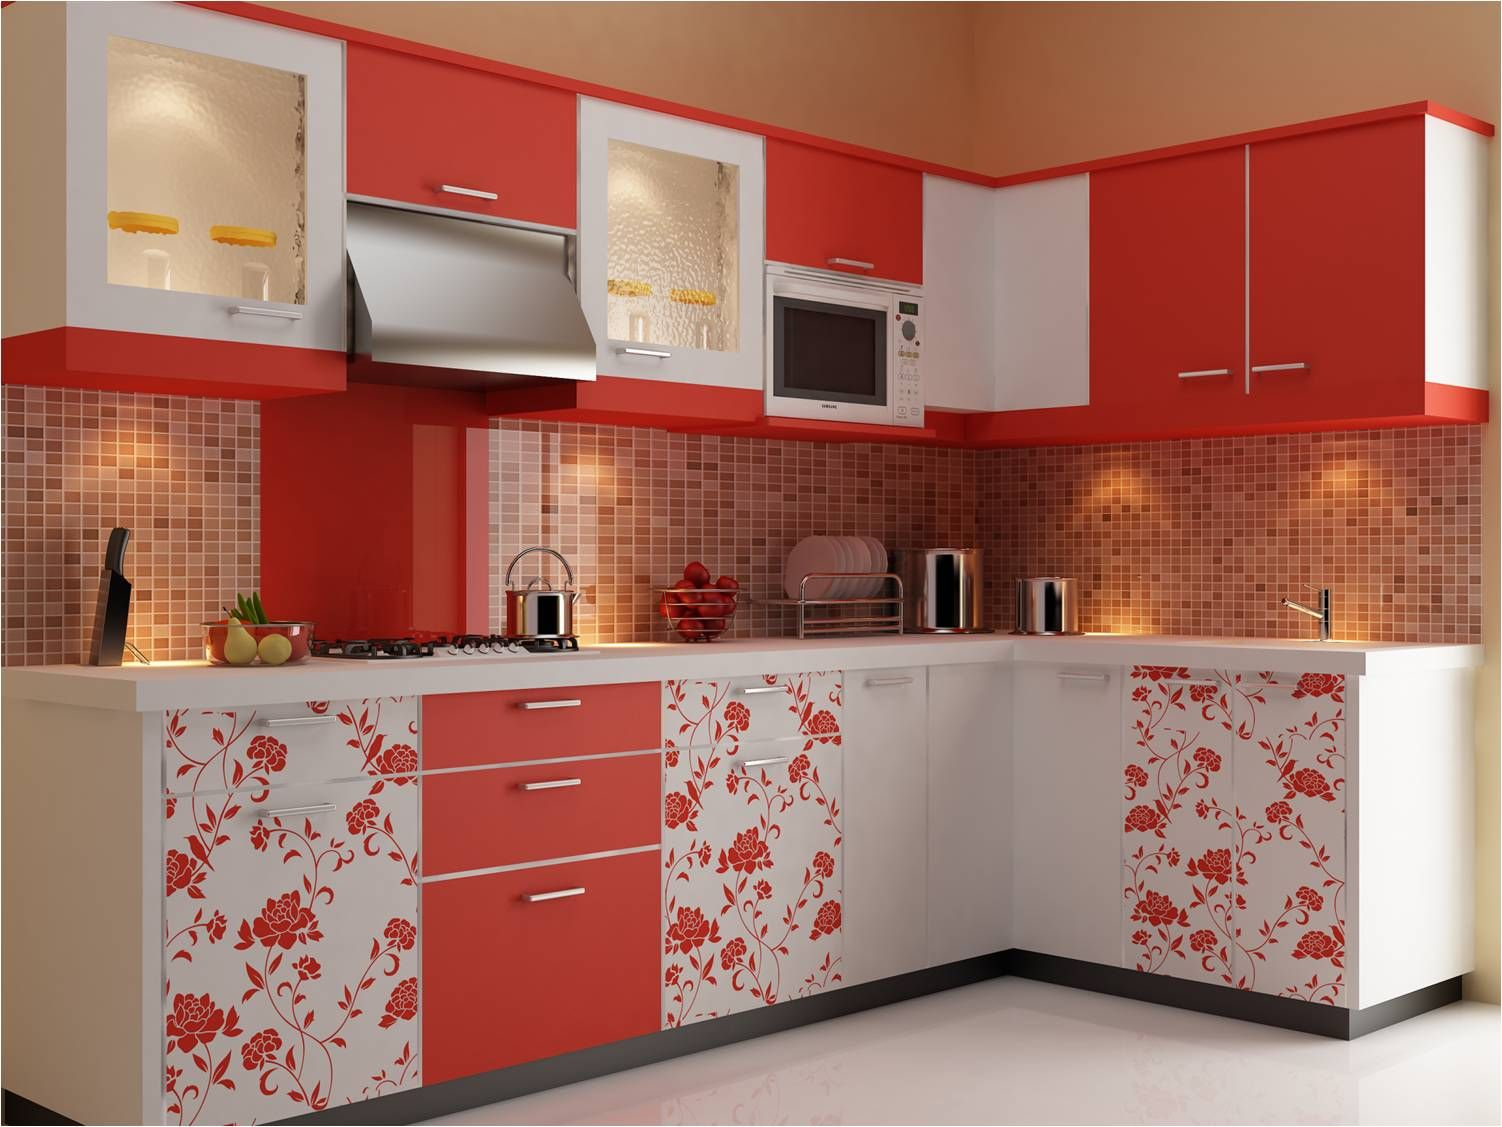 9 best tambaram modular kitchen images on pinterest kitchen